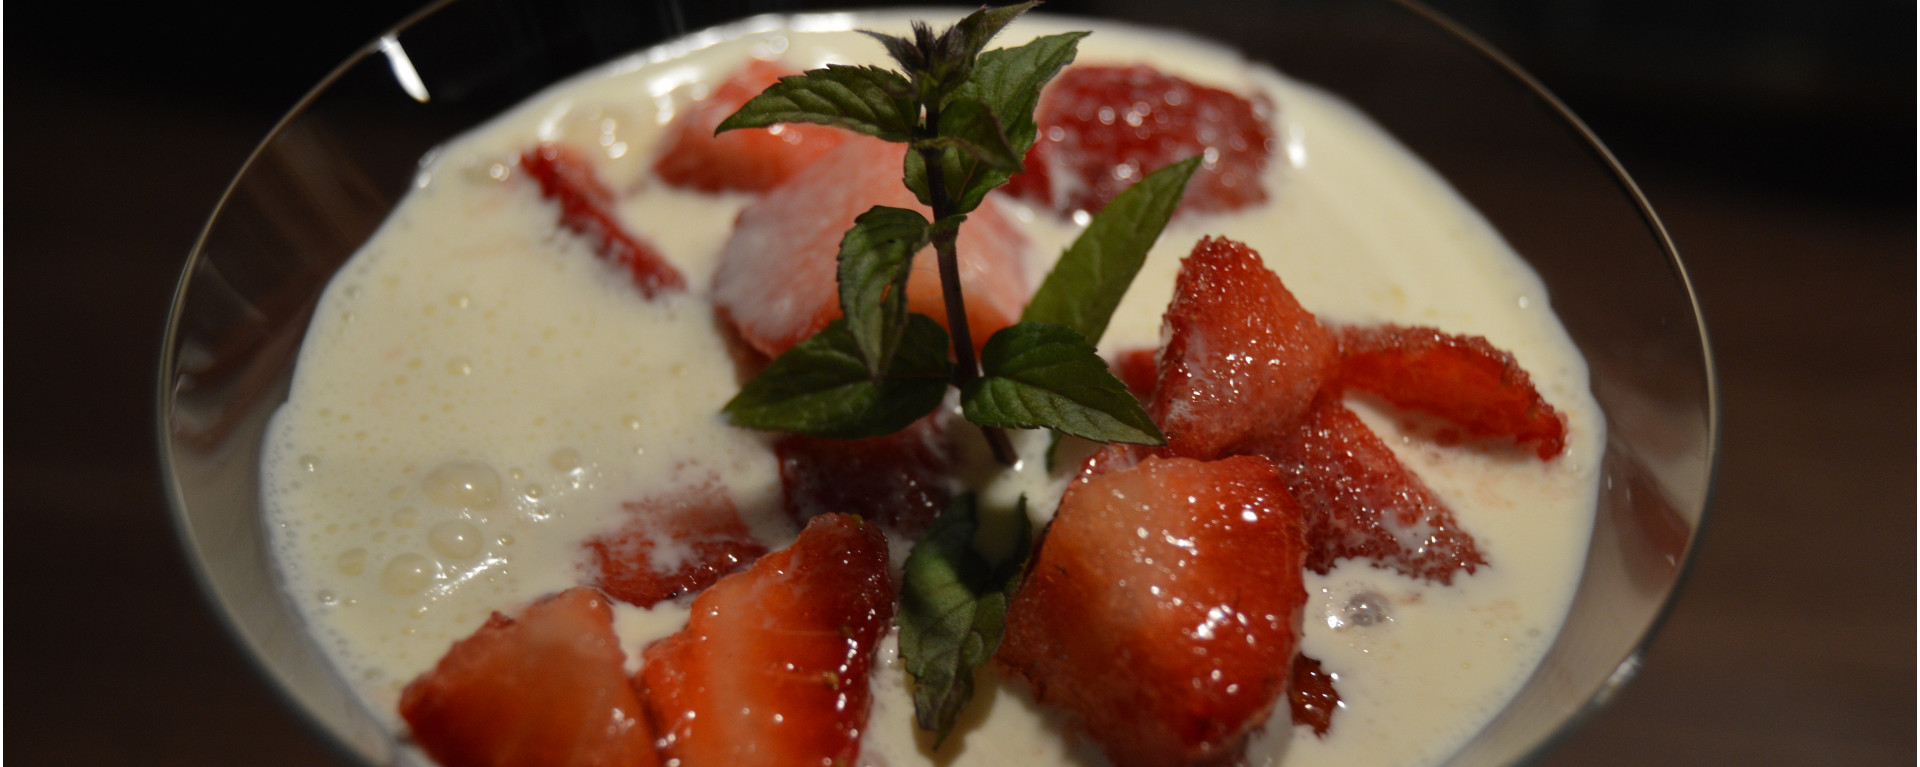 Norwegian Strawberries with heavy cream